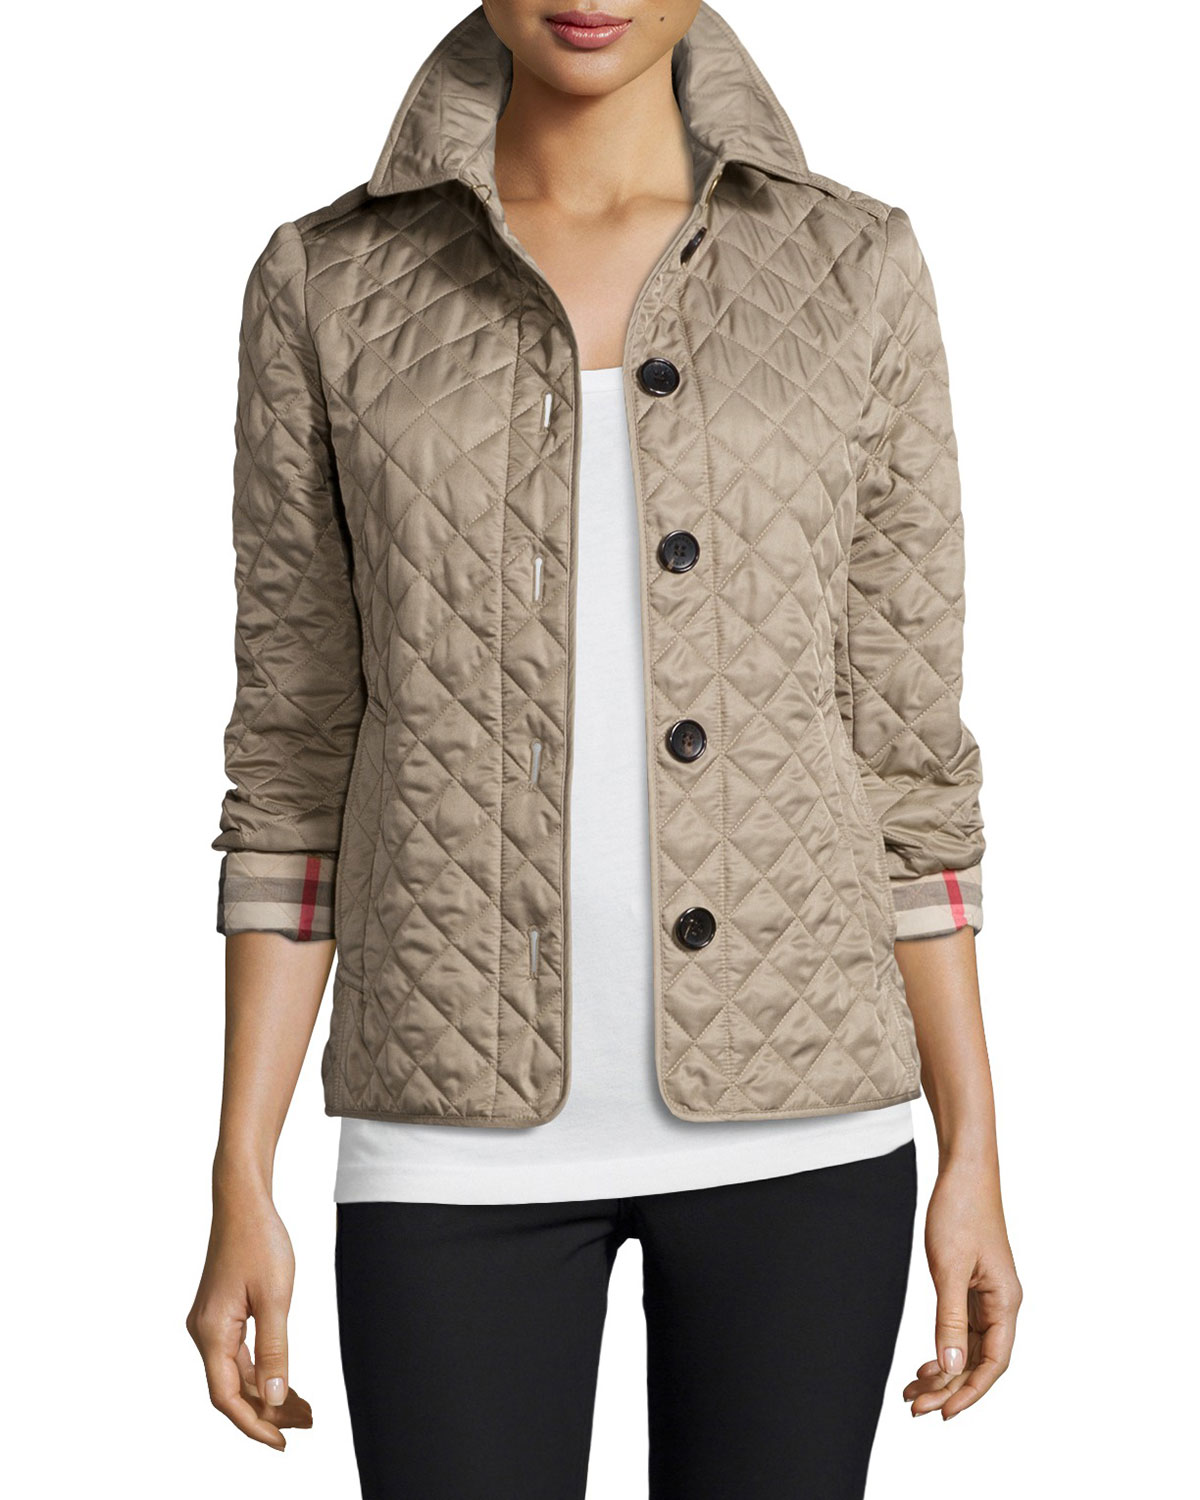 Cotton Quilted Jacket | Neiman Marcus : cotton quilted jacket - Adamdwight.com